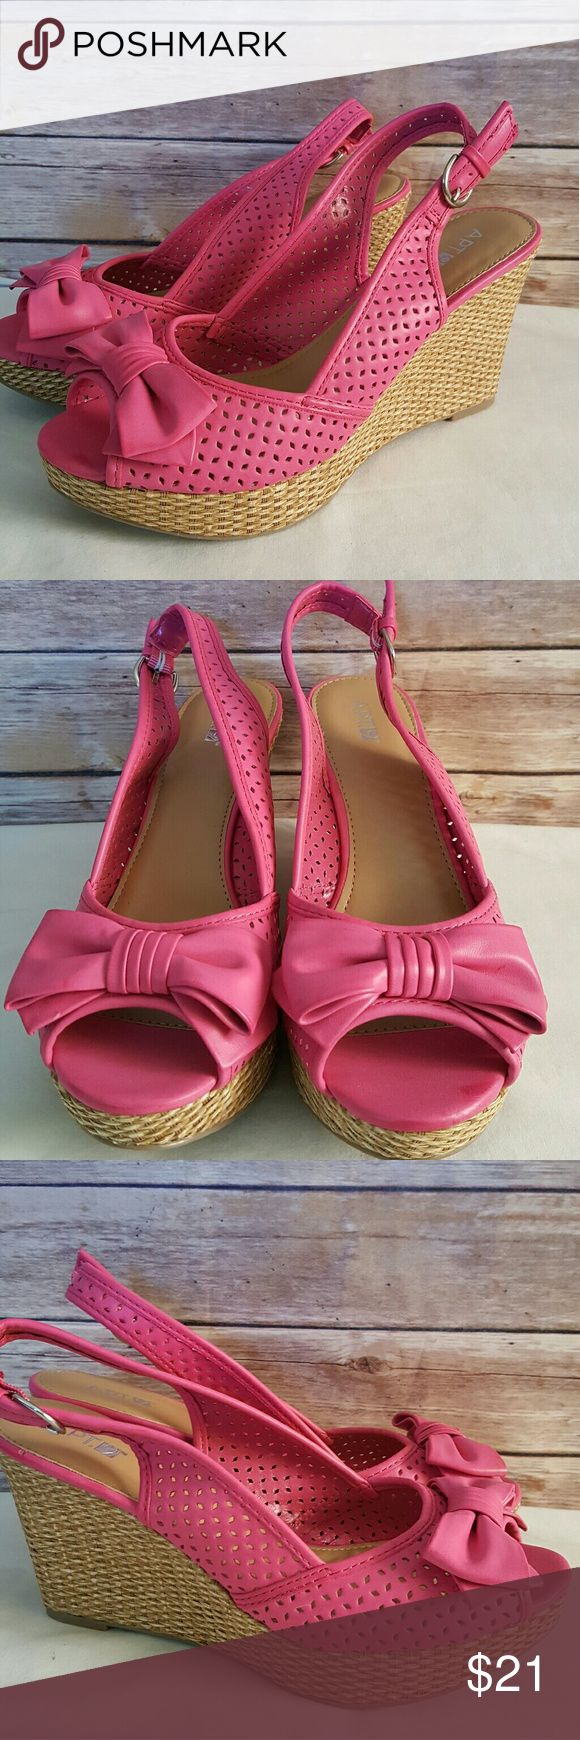 """New Bright Pink Espadrille Peep Toe Wedge 9.5 M Brand new without box  Size 9.5 Medium 4"""" heel Open Peep Toe with bow Apt. 9 Shoes Espadrilles"""